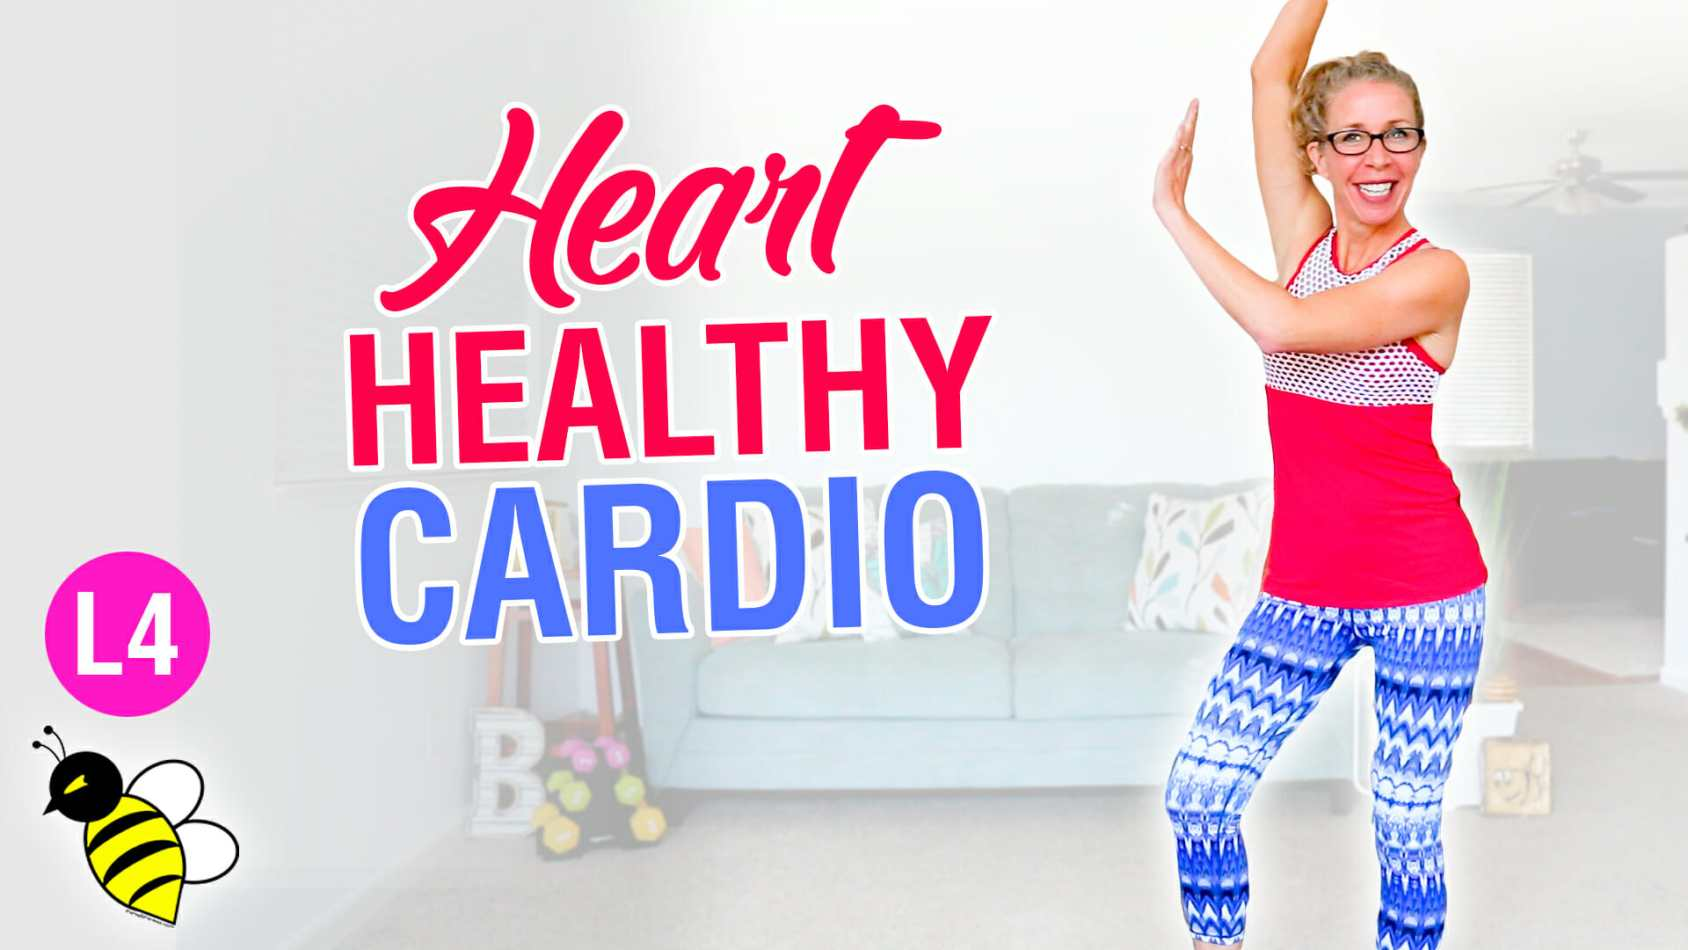 Heart Healthy CARDIO, 50 minute low impact home workout